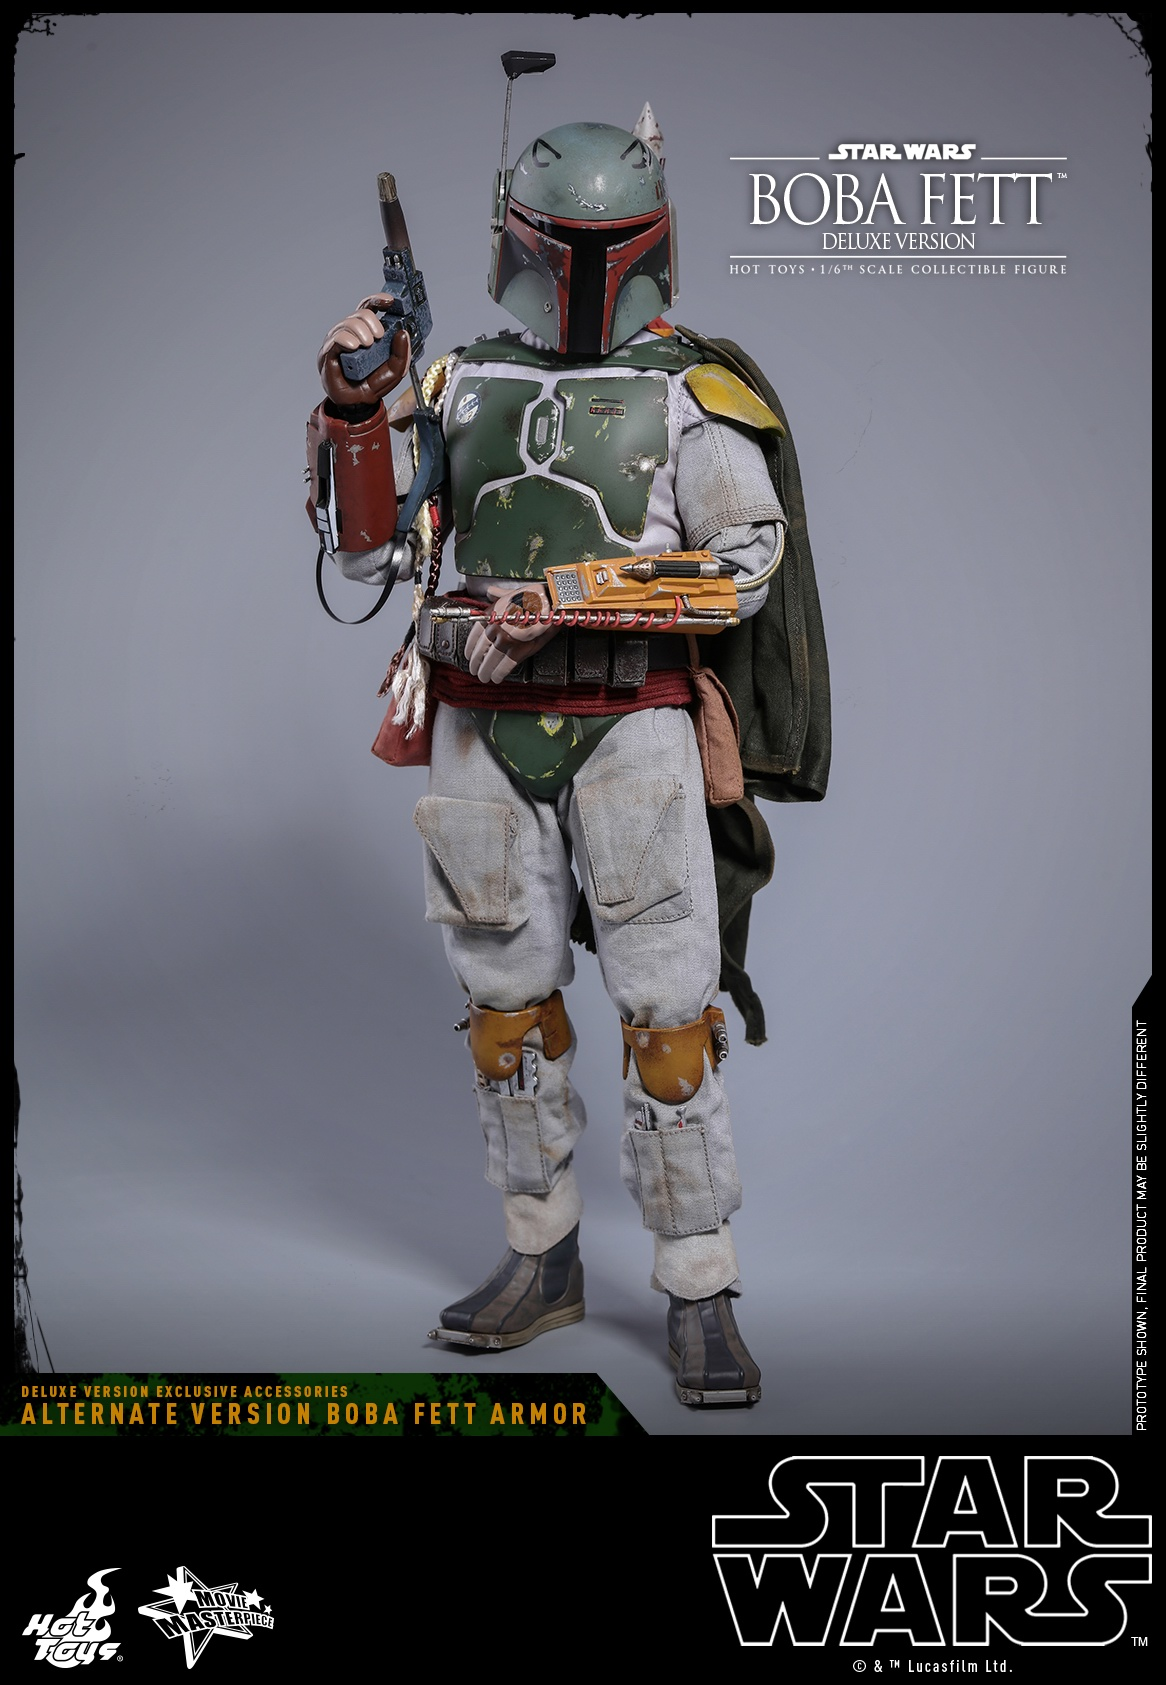 Hot Toys - Star Wars - Boba Fett collectible figure (Deluxe)_PR1.jpg